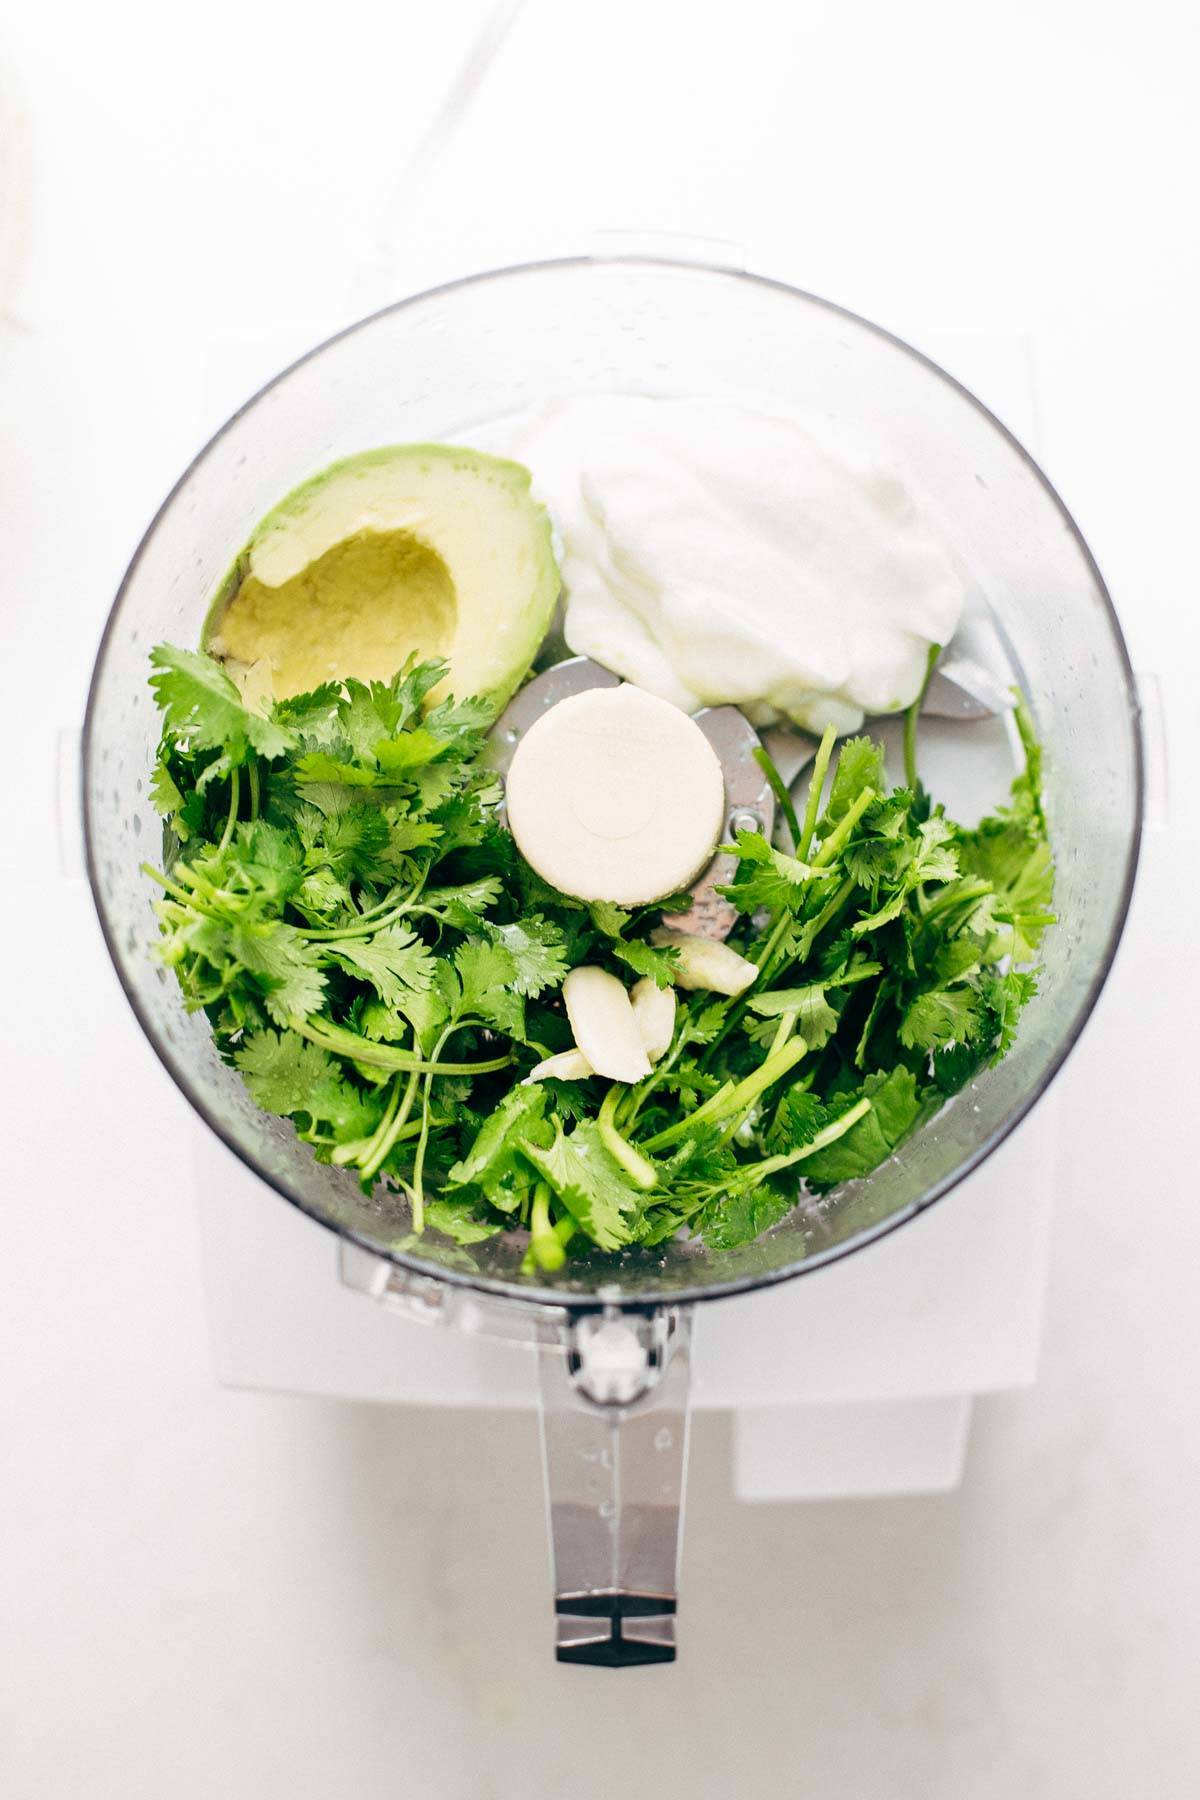 Avocado, greek yogurt, lime, and cilantro in a food processor.